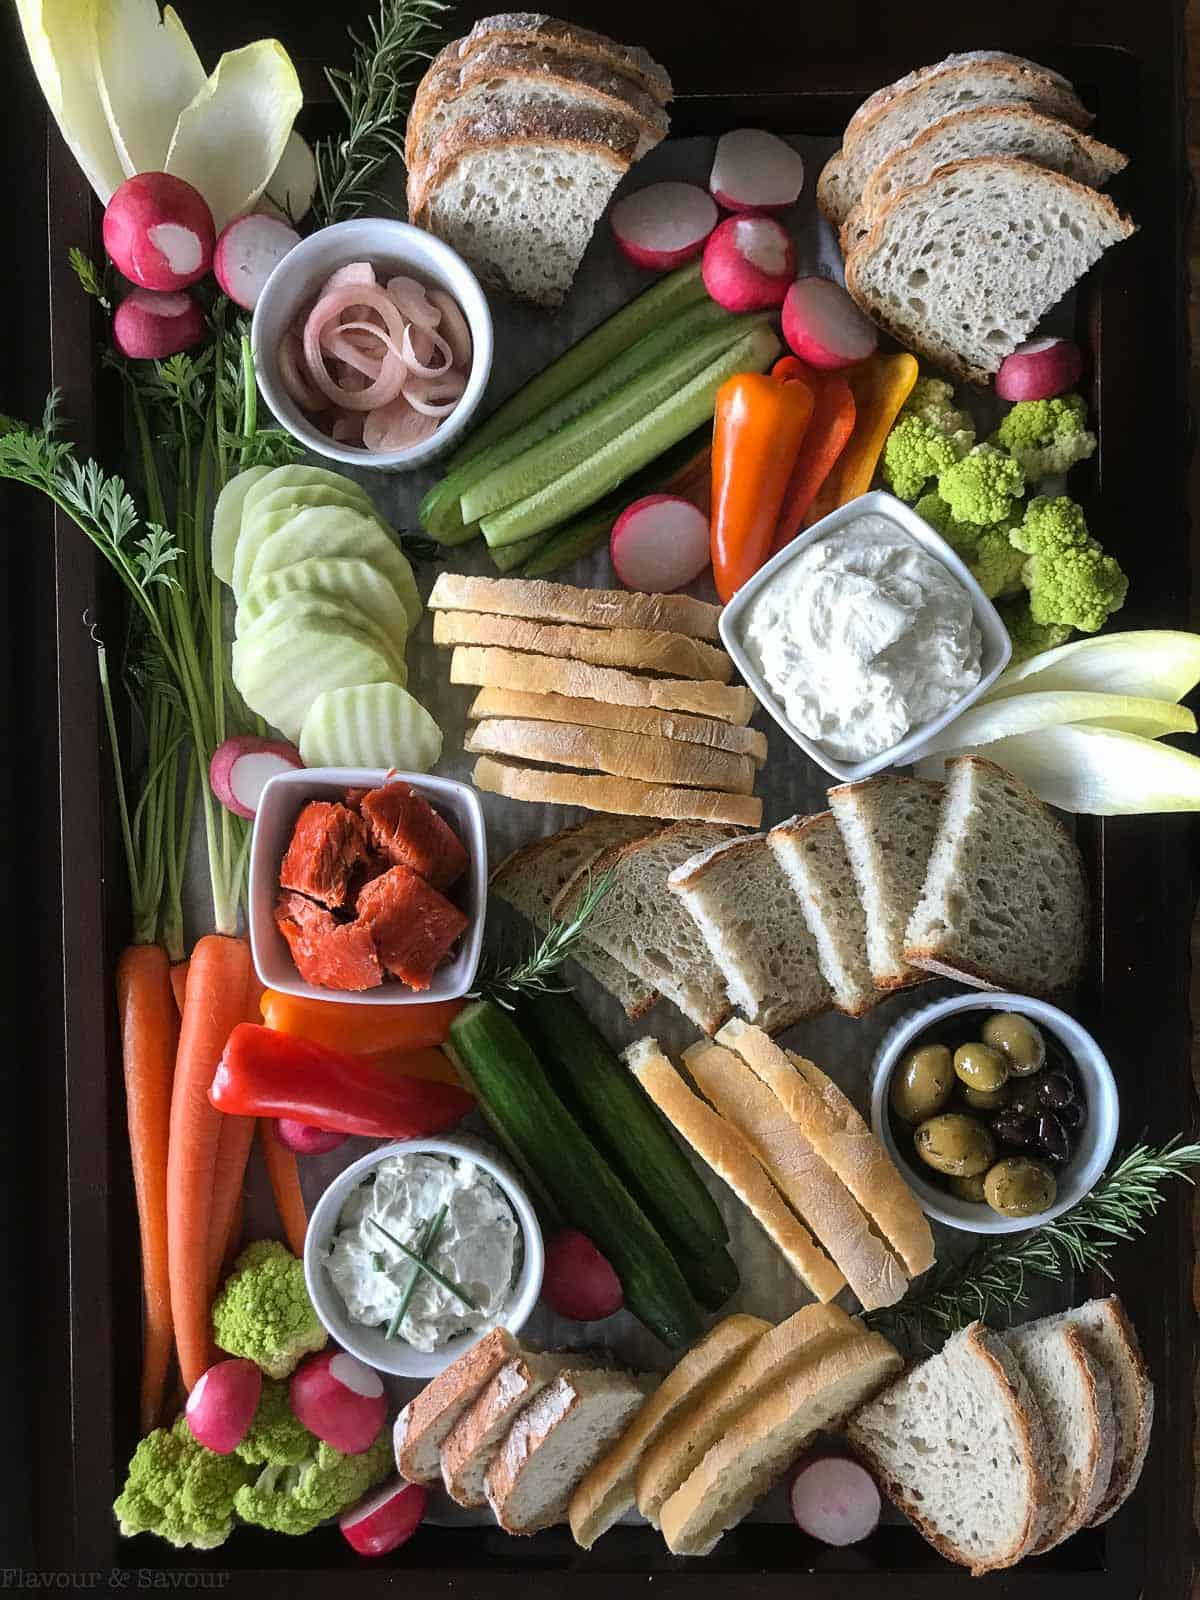 Appetizer Snack Board with veggies, breads, cheese and pickled shallots